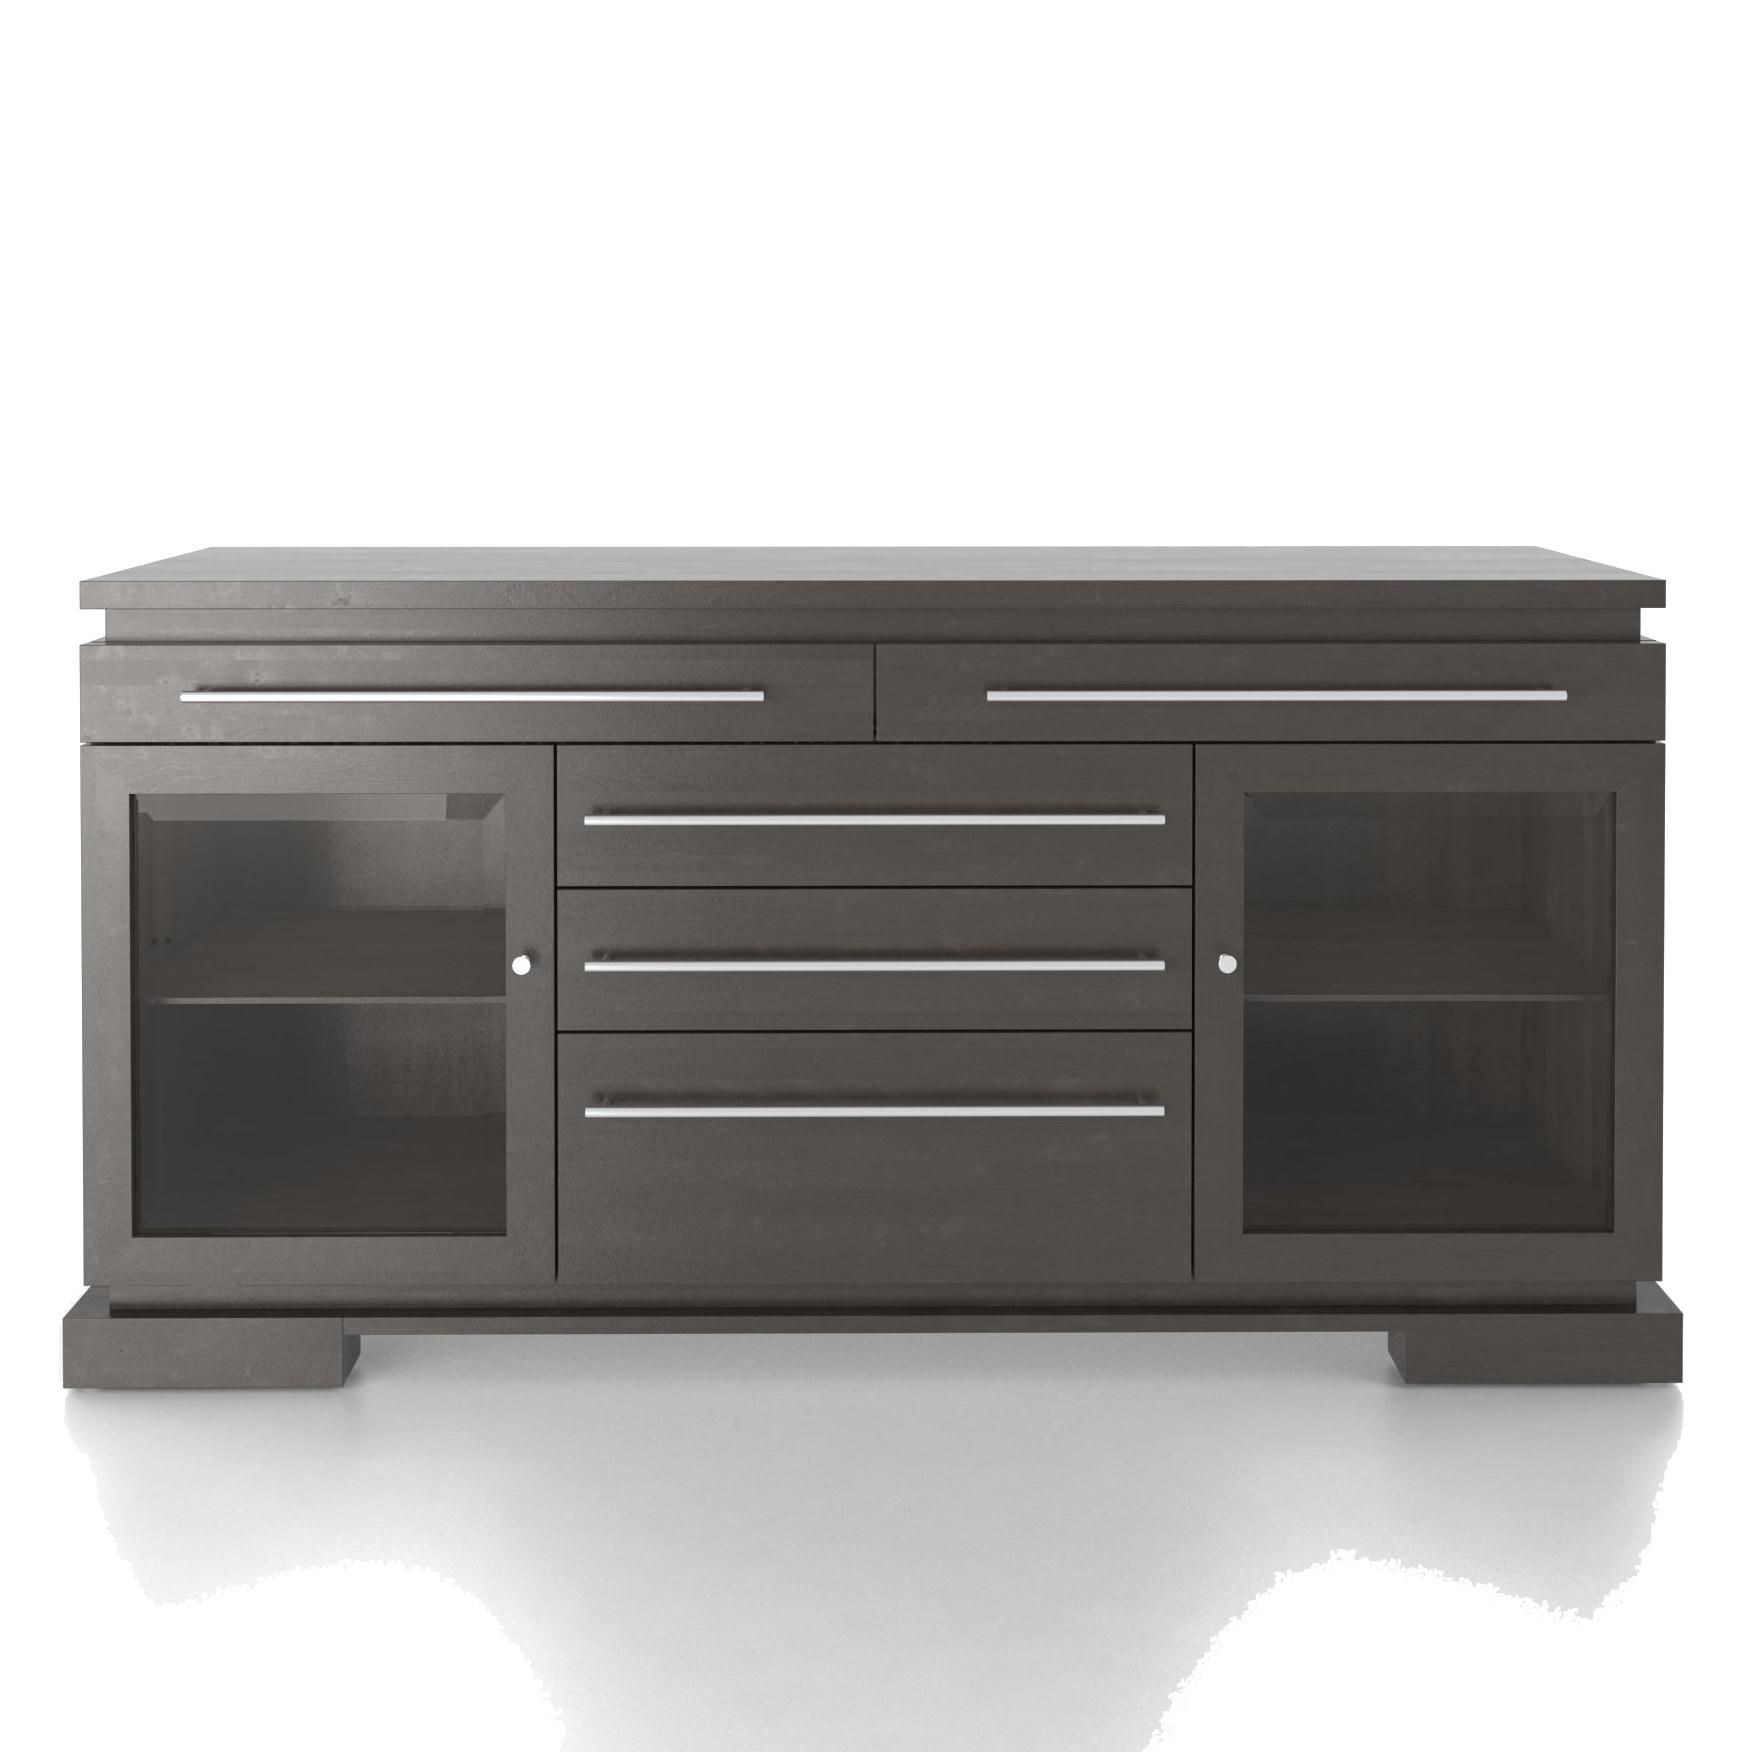 Custom Dining Modern Customizable Buffet With 2 Glass Doors By Canadel At Darvin Furniture Furniture Home Furnishings Buffet